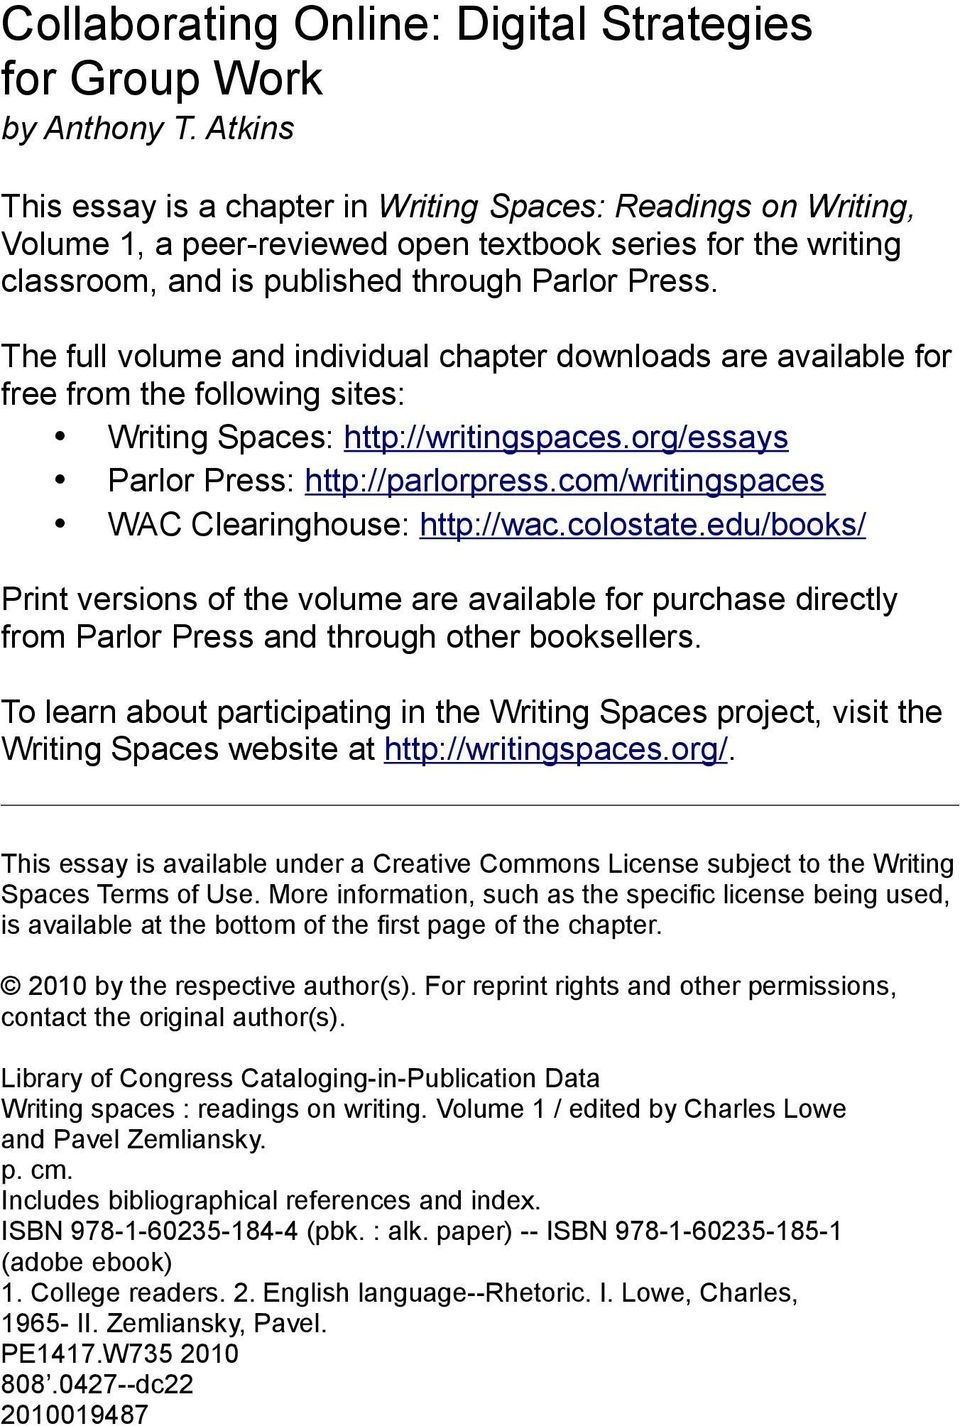 org/essays Parlor Press: http://parlorpress.com/writingspaces WAC Clearinghouse: http://wac.colostate.